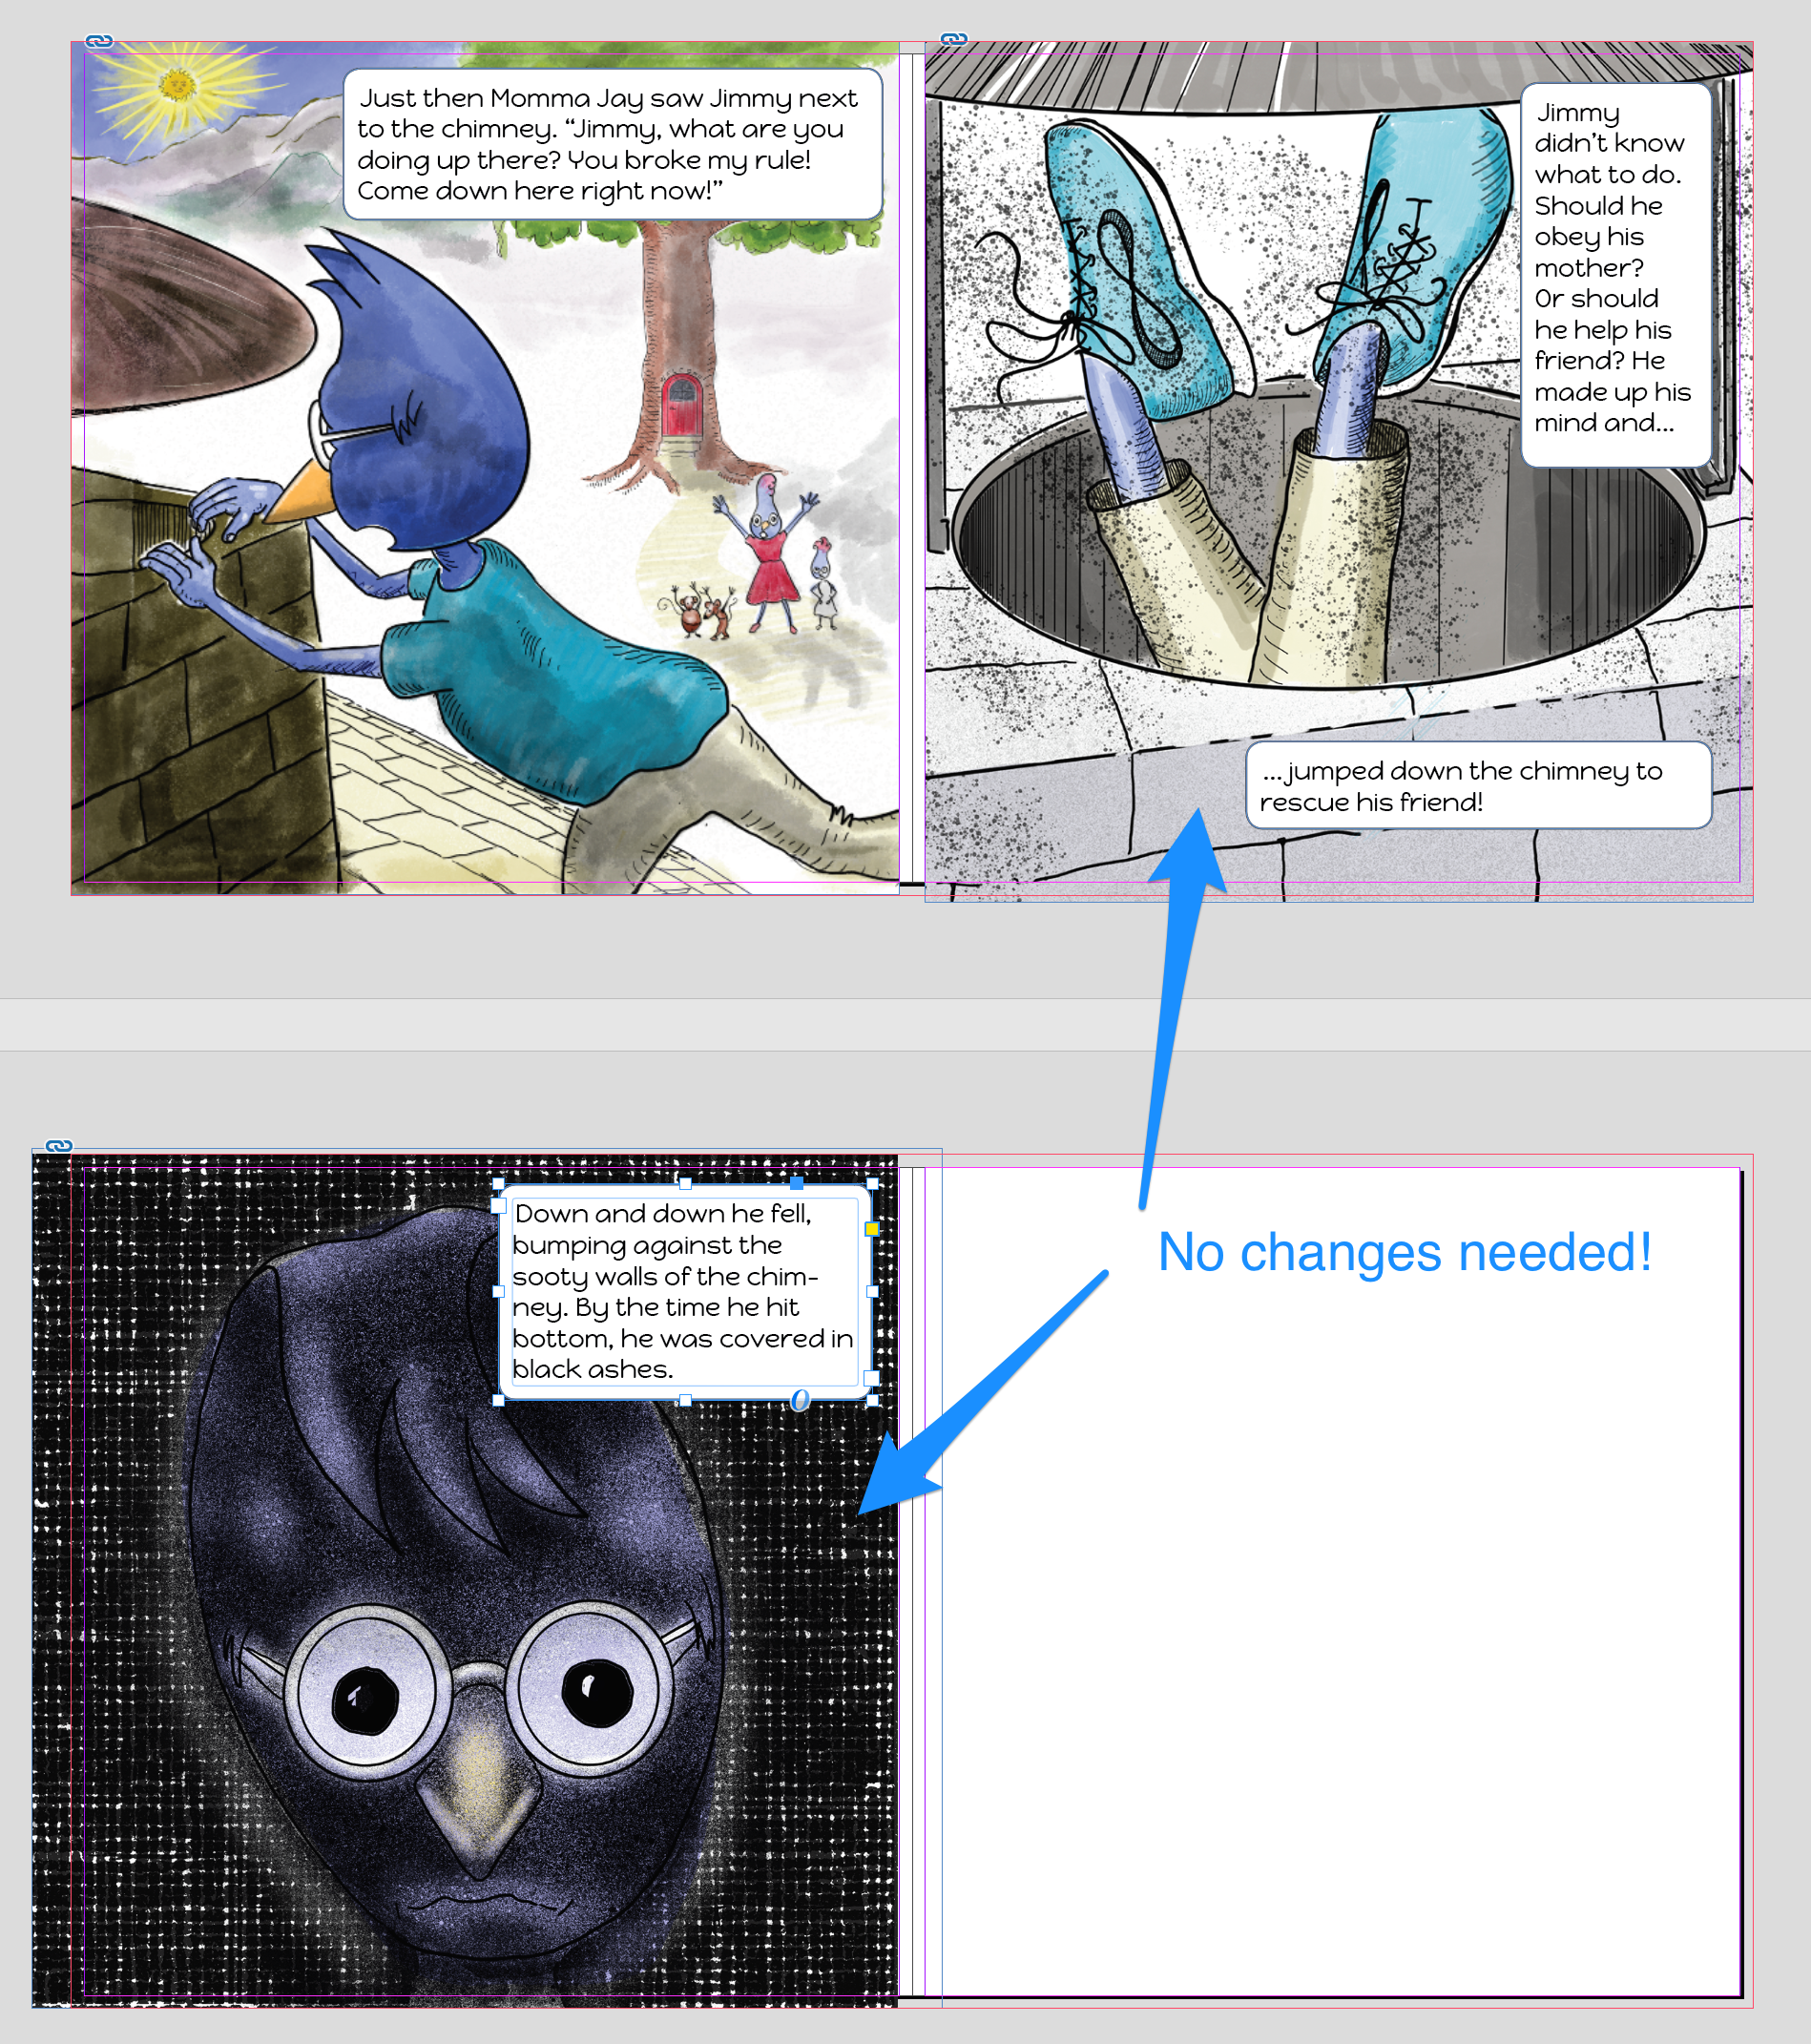 no_changes_needed_blog.png InDesign, images layout, children's picture book